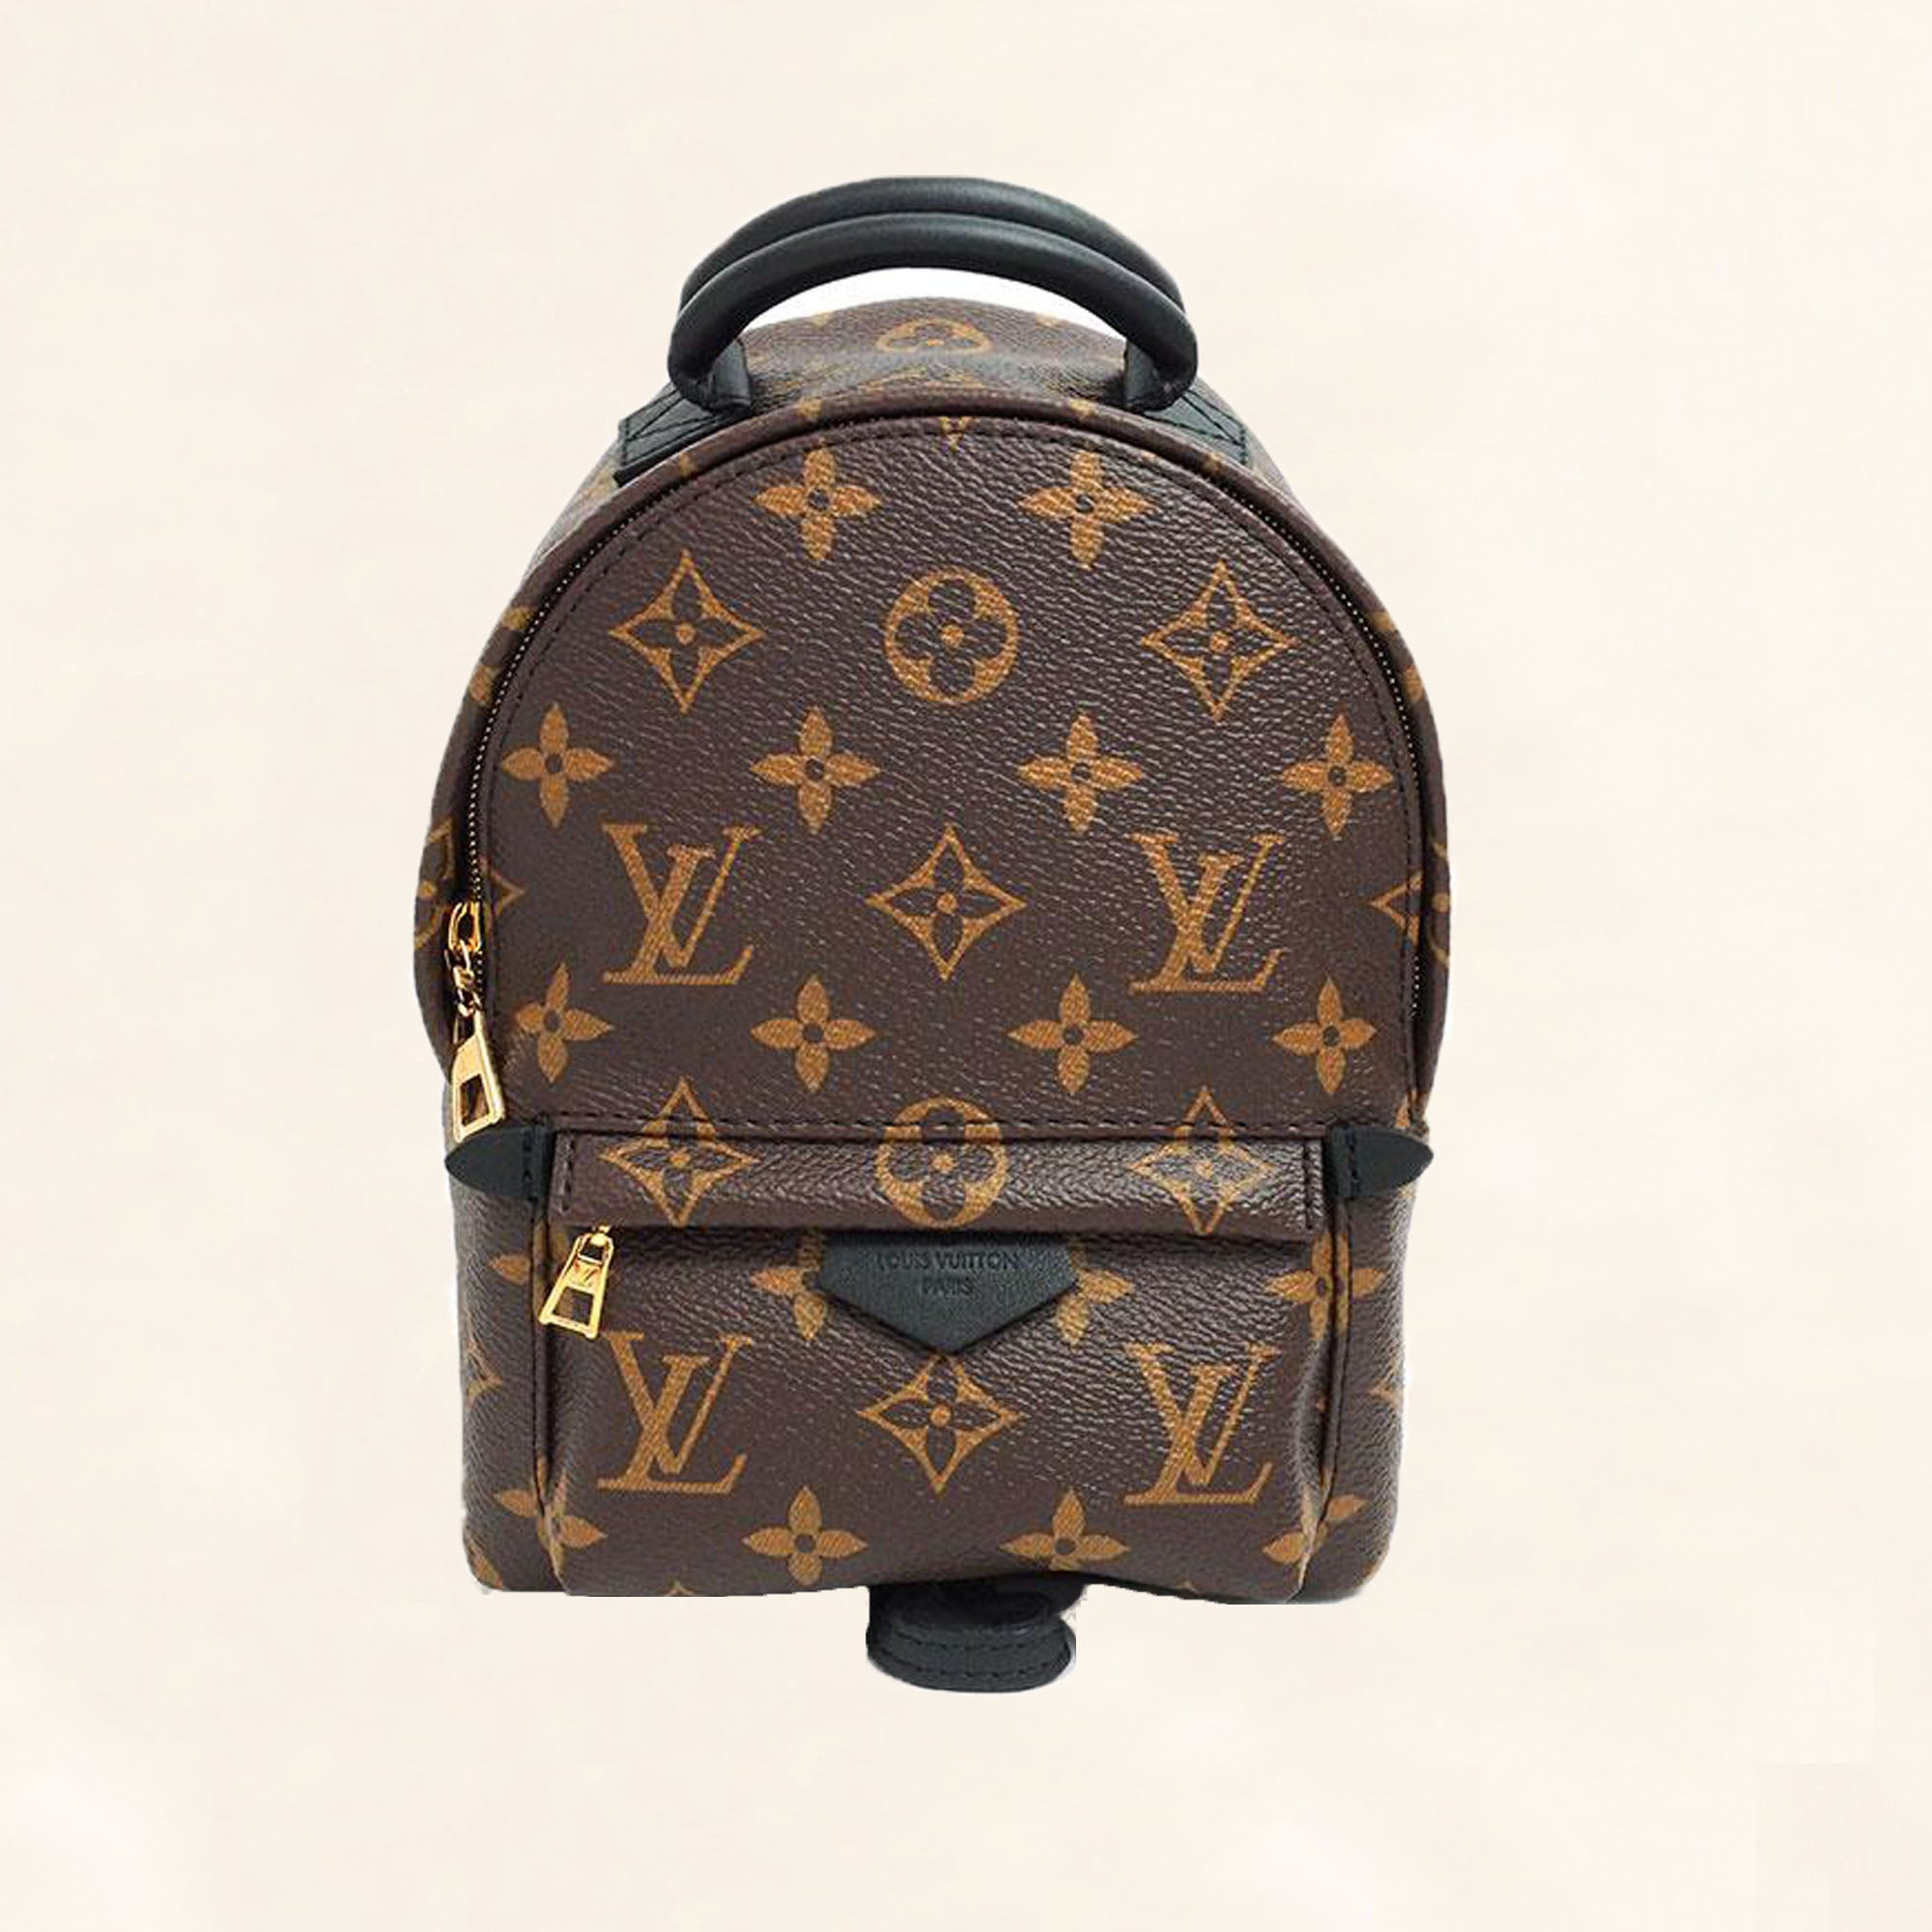 Louis Vuitton Palm Springs Backpack Mini M41562 The